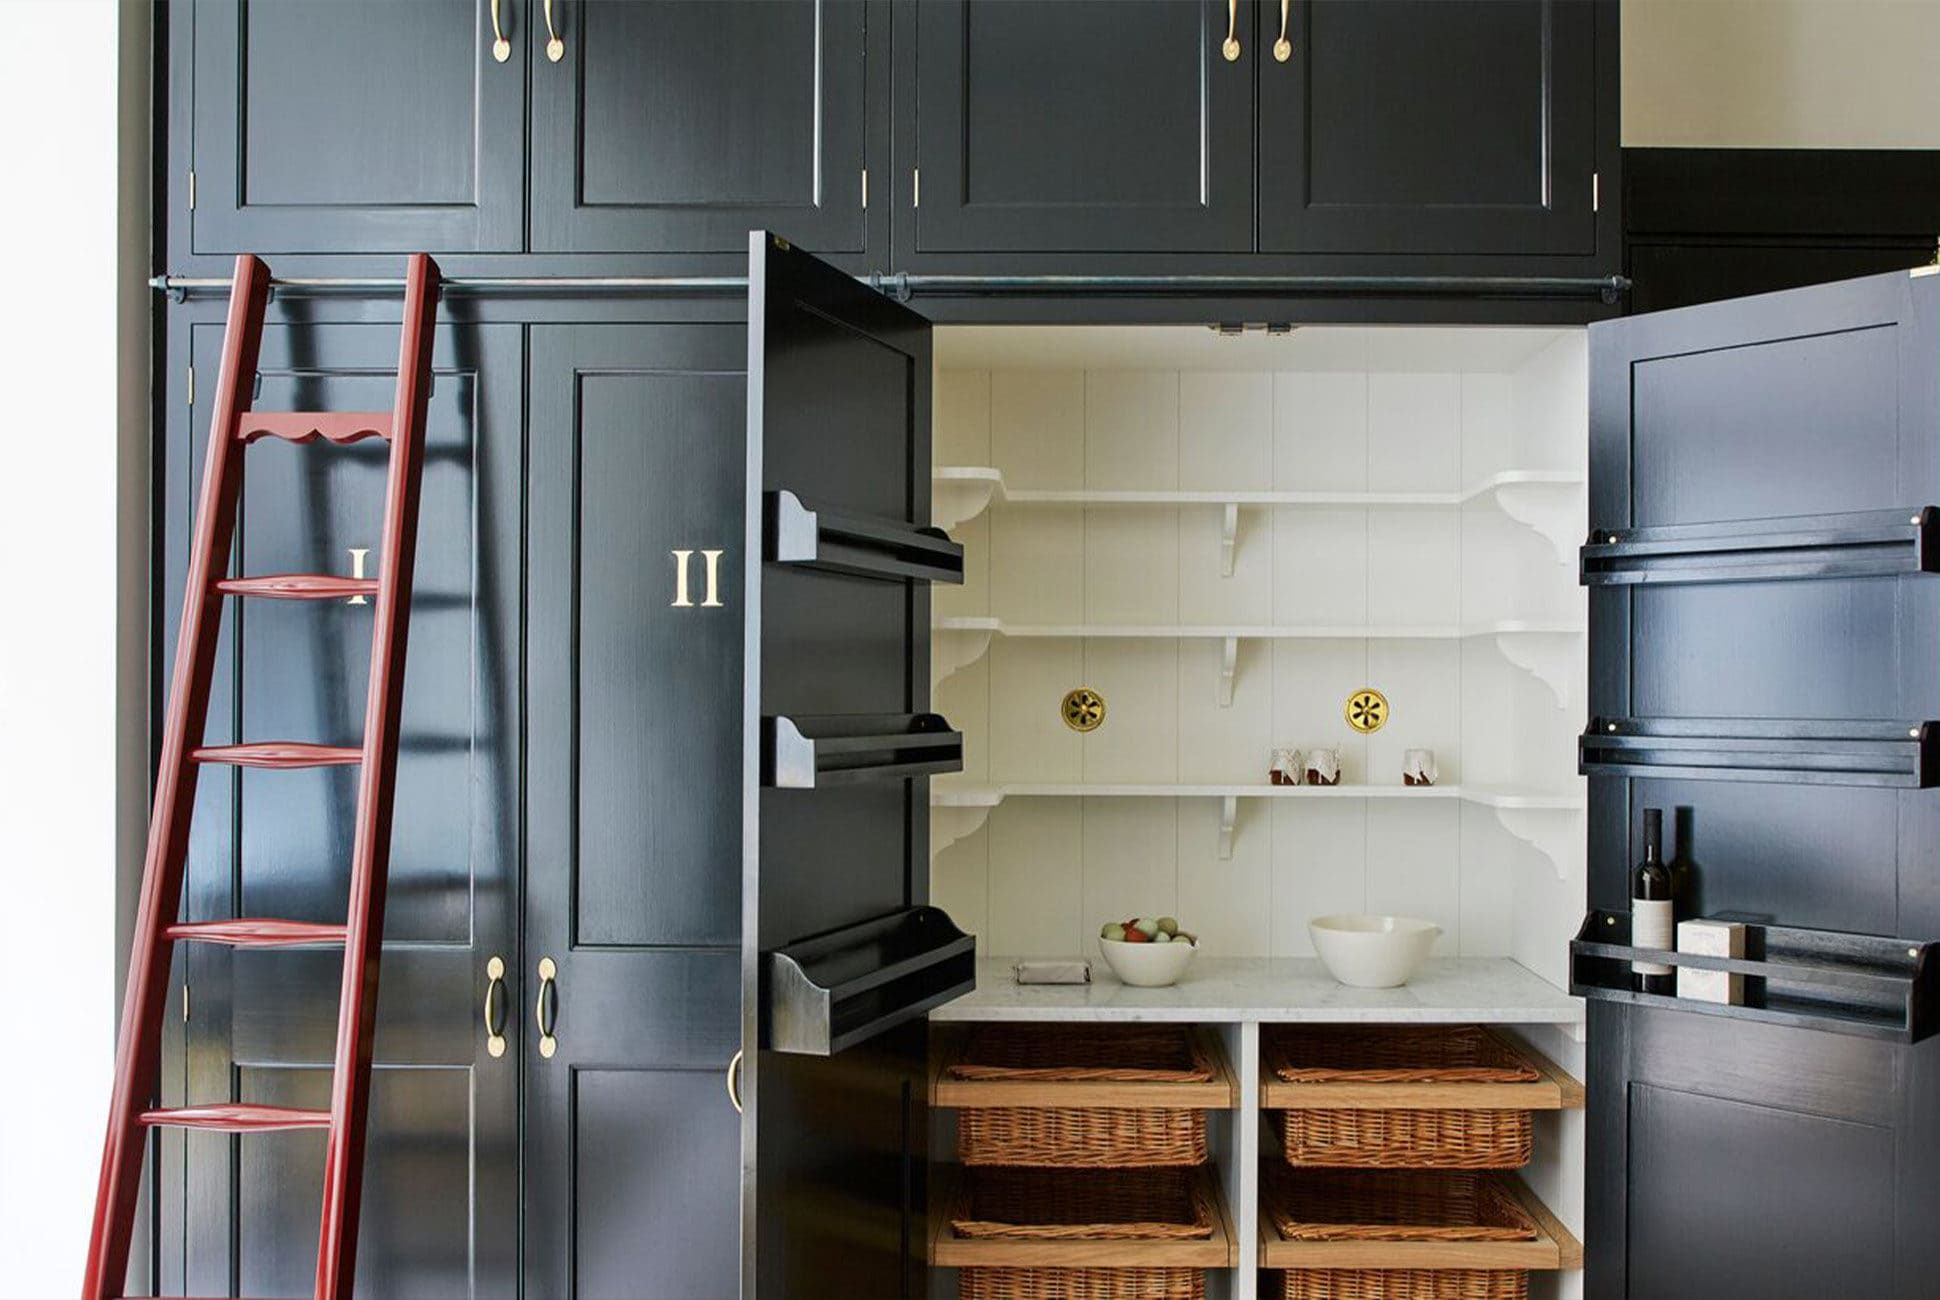 These Handbuilt Kitchens Are the Stuff Dreams Are Made Of #plainenglishkitchen